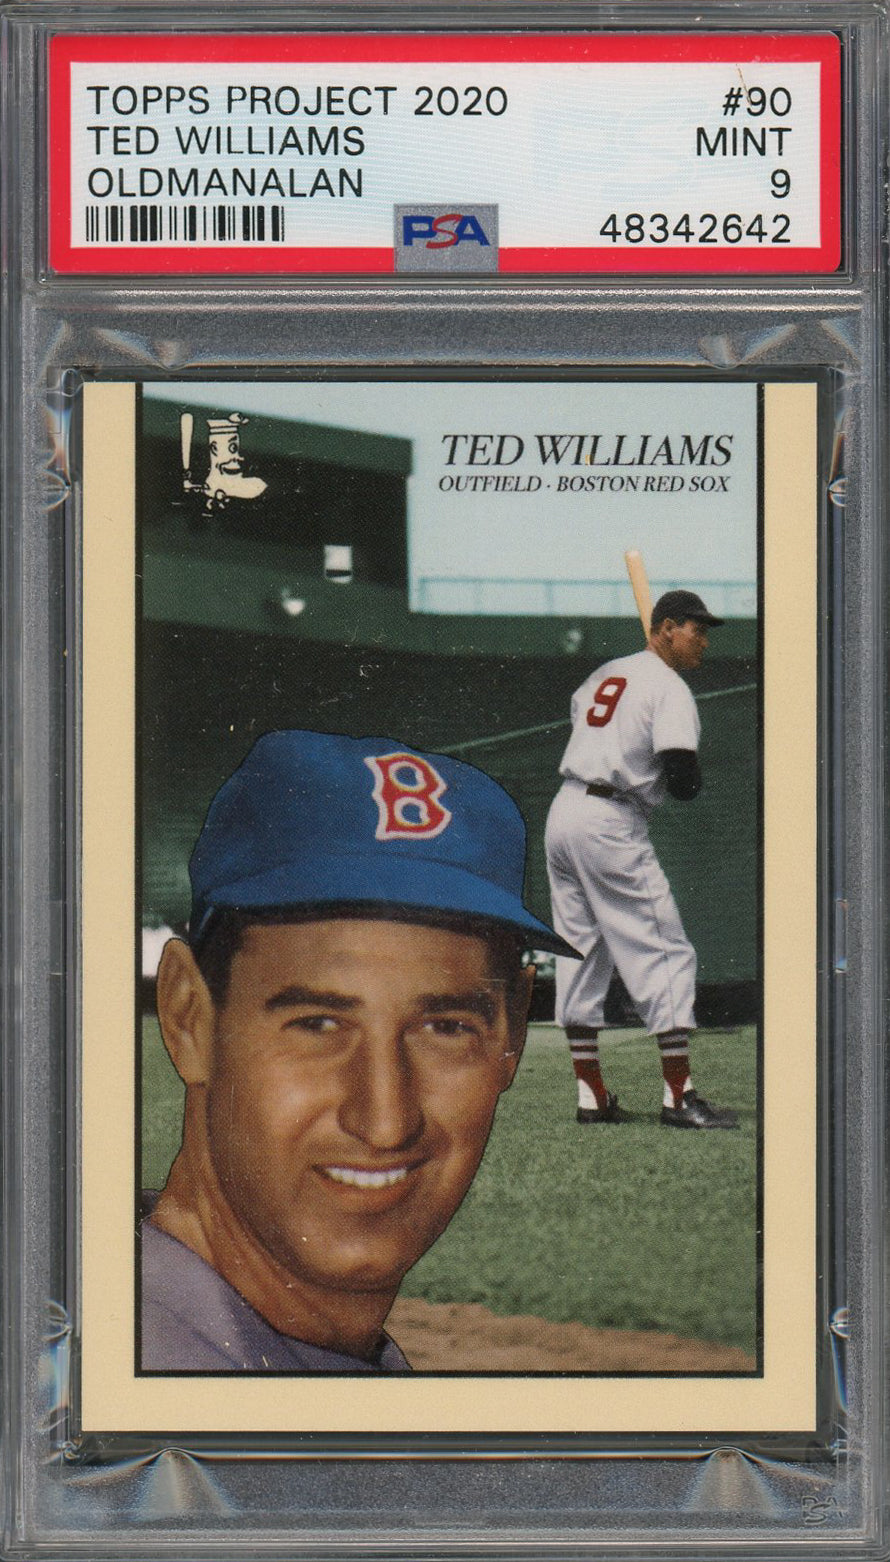 Ted Williams Boston Red Sox Topps Project 2020 Oldmanalan Baseball Card #90 Graded PSA 9 MINT-Powers Sports Memorabilia